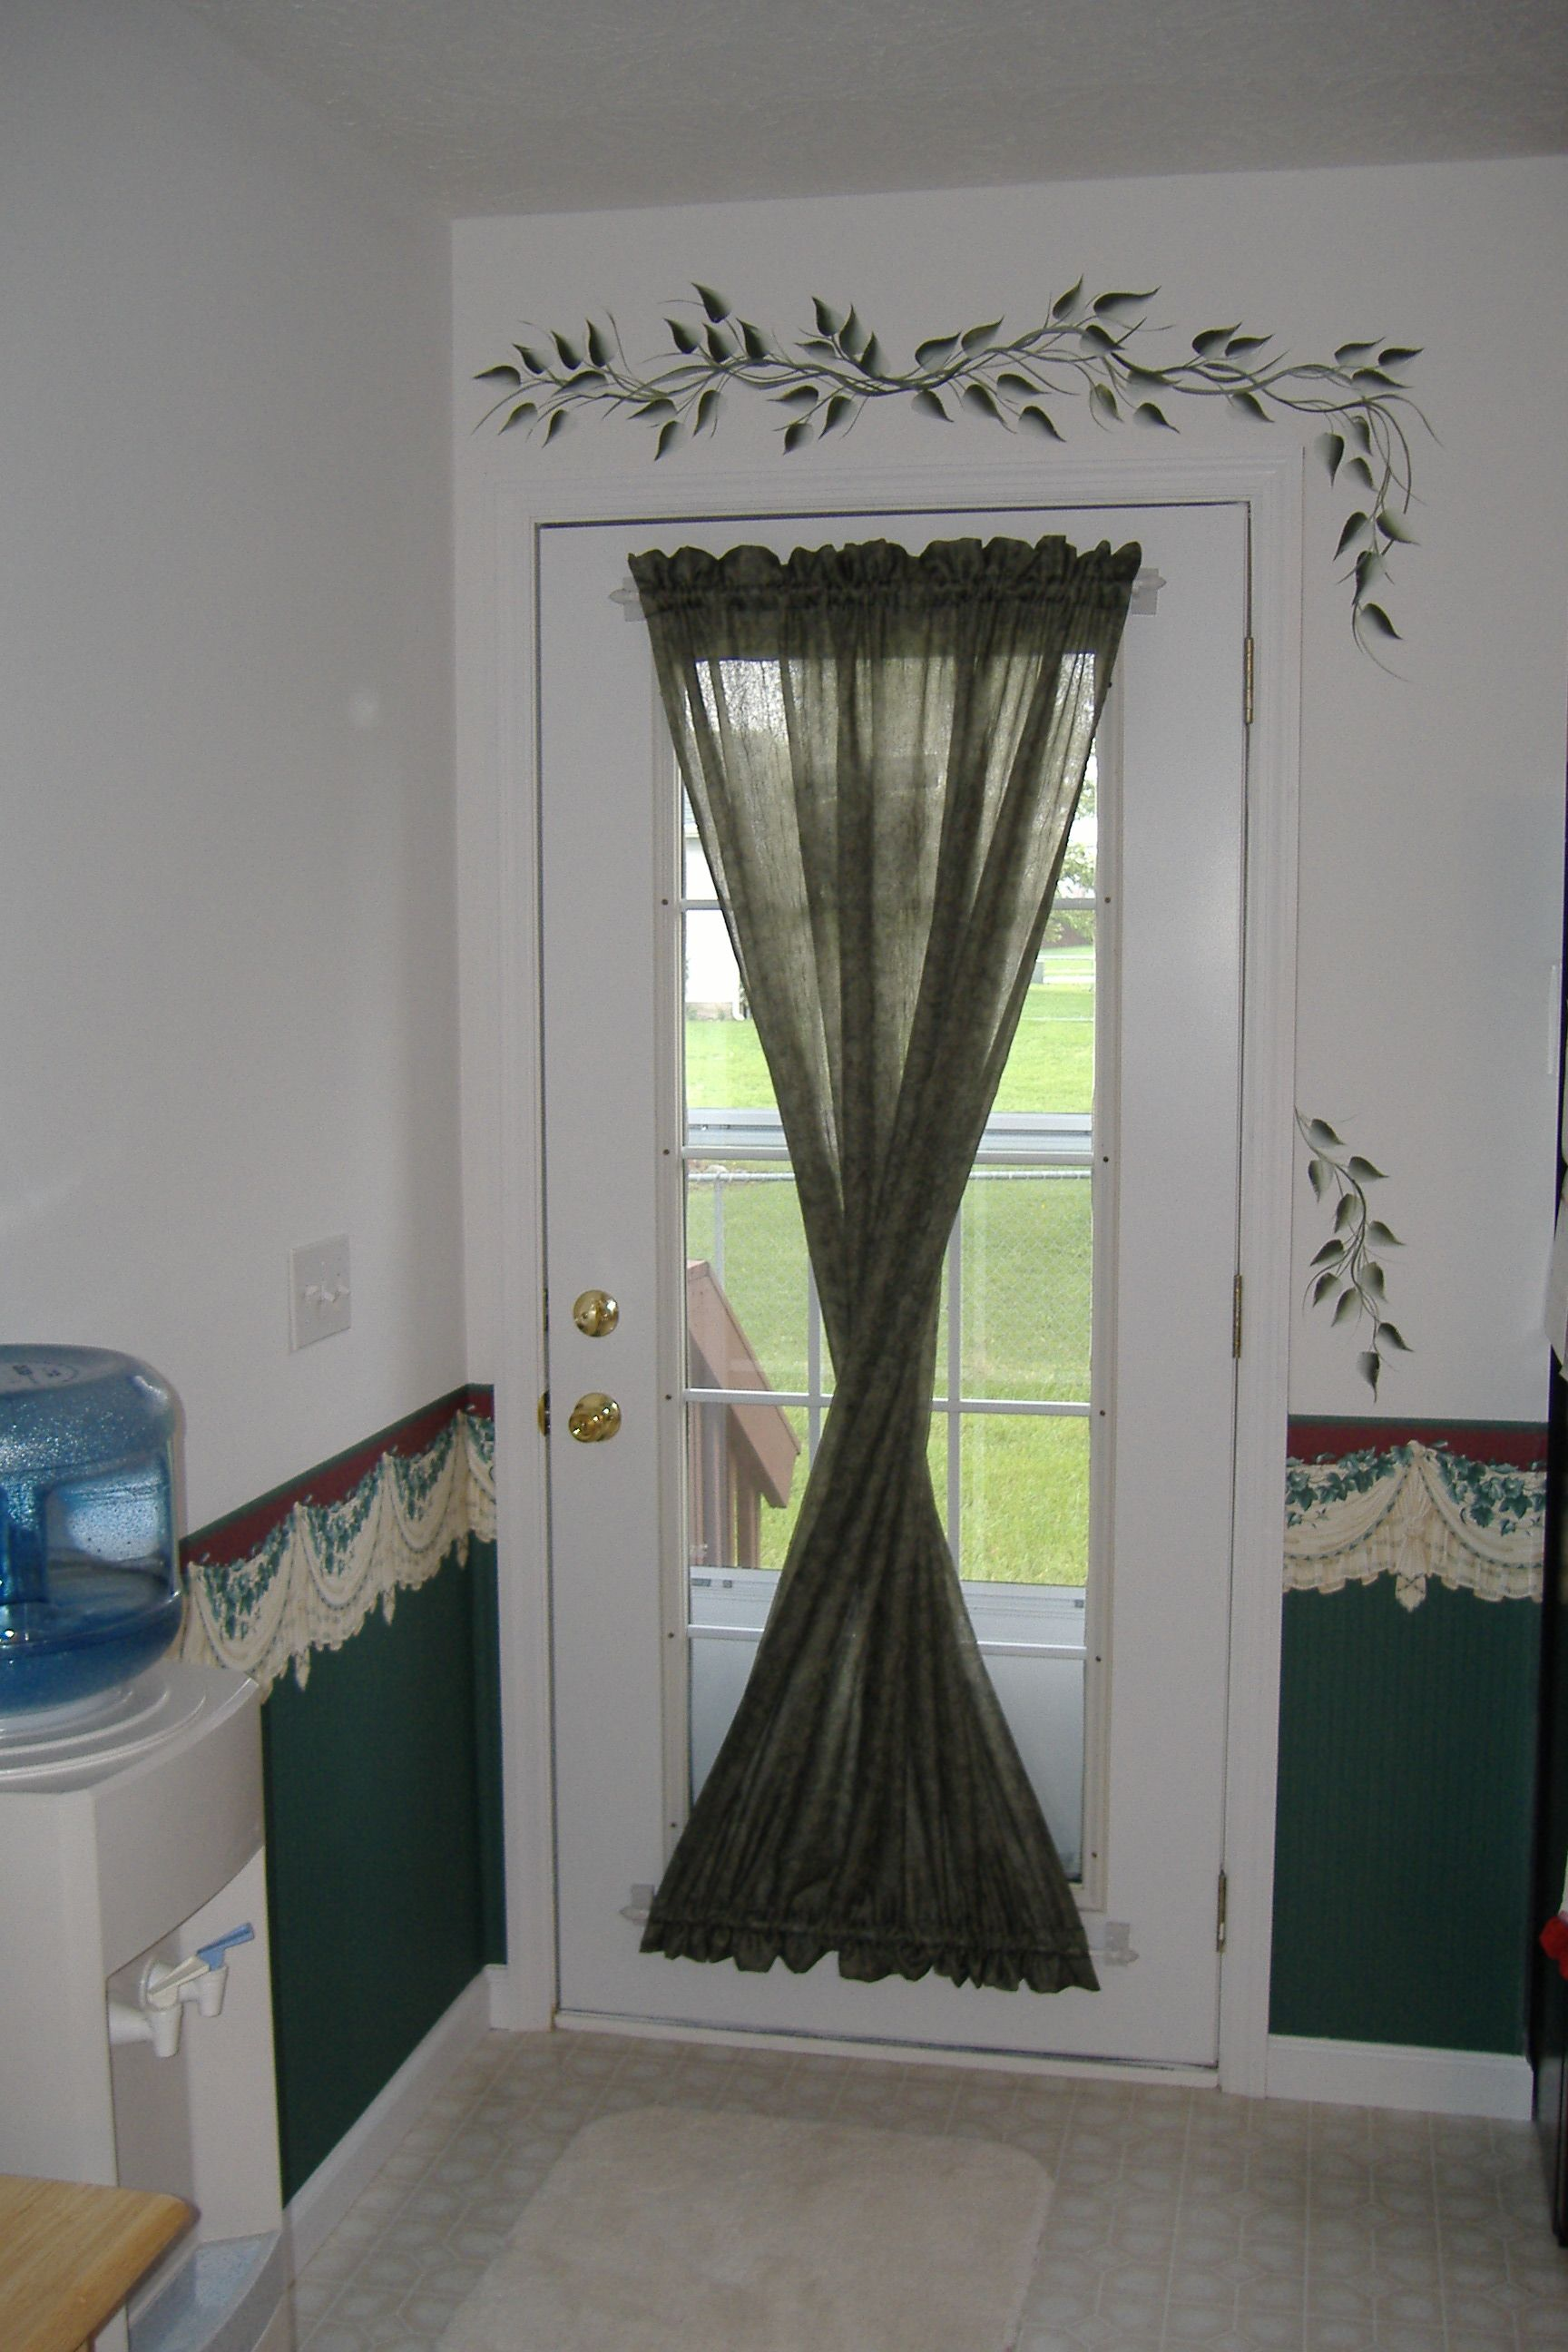 Window dressing ideas for arched windows  r family custom twist at back door with custom painting  centralus